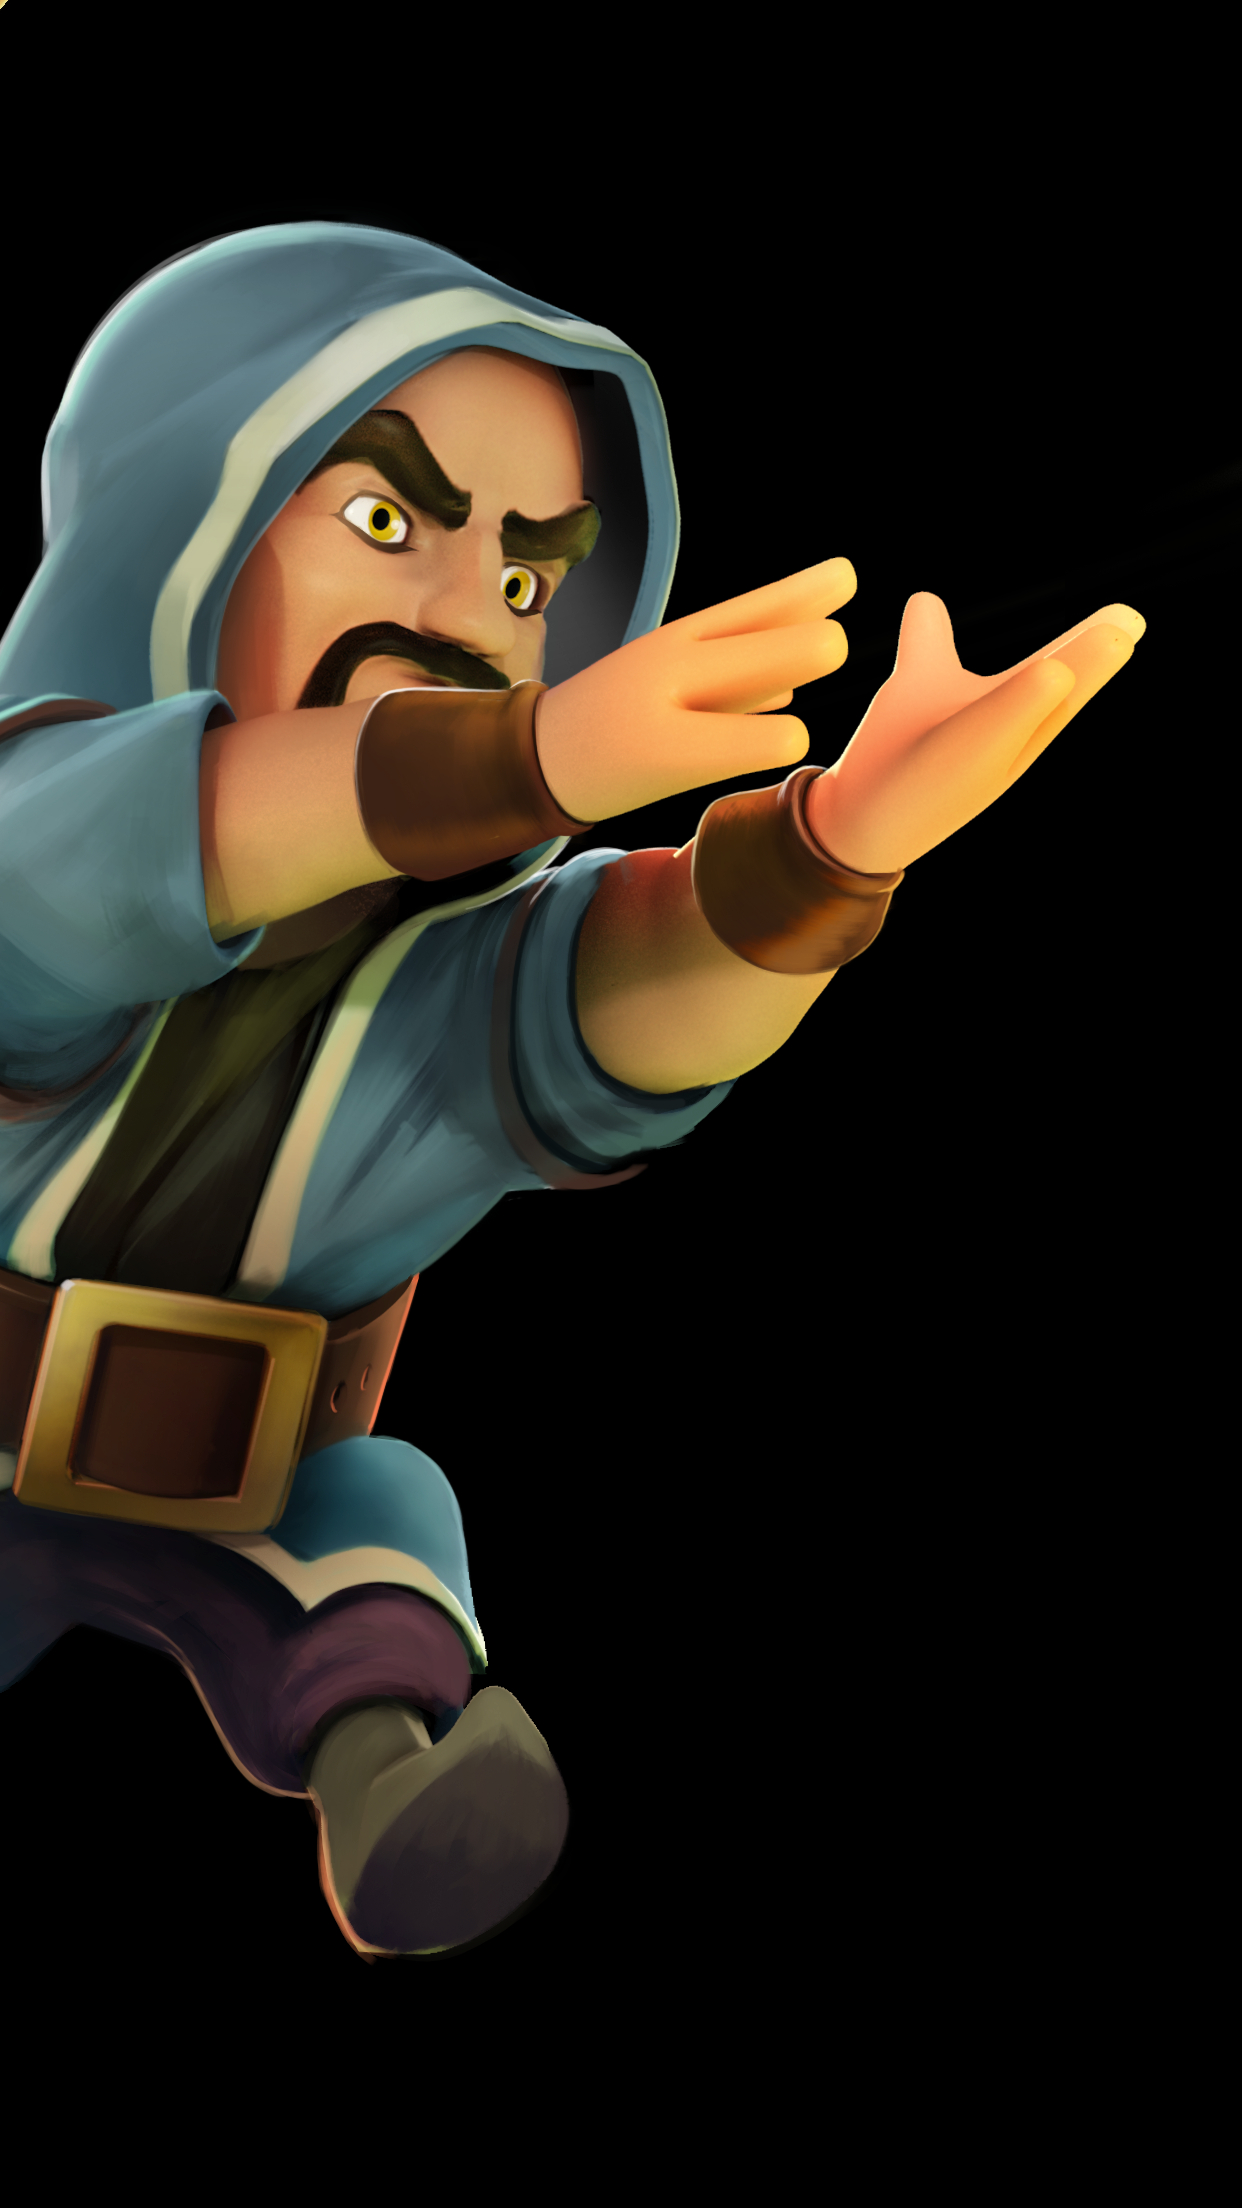 Clash of Clans Wizard Images | Full HD Pictures